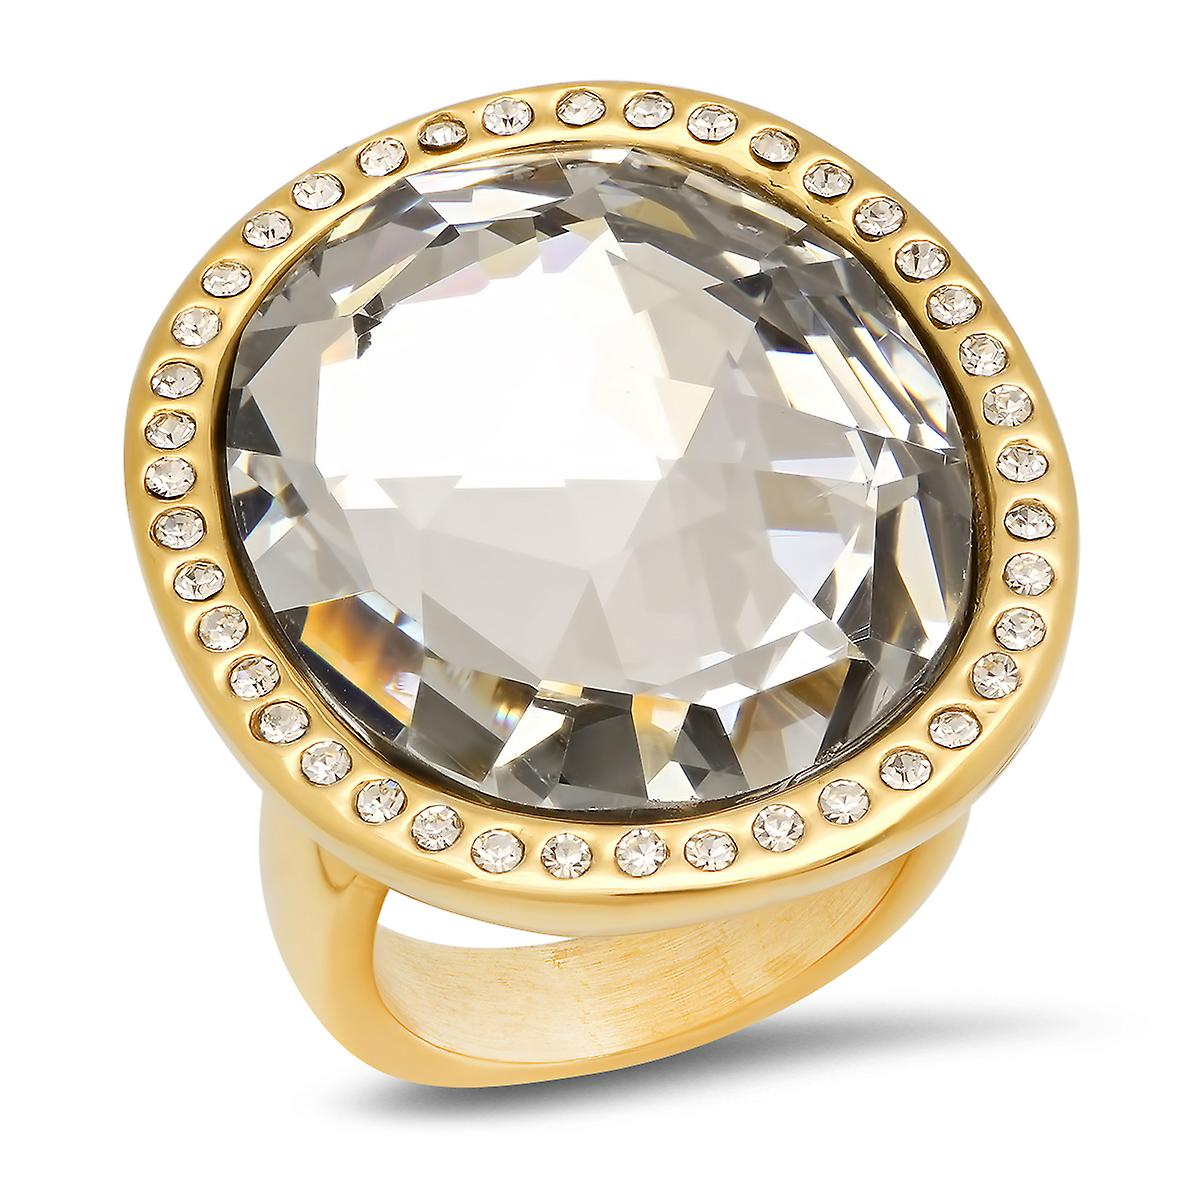 Ladies 18K Gold Plated Stainless Steel Simulated Diamond Cocktail Ring